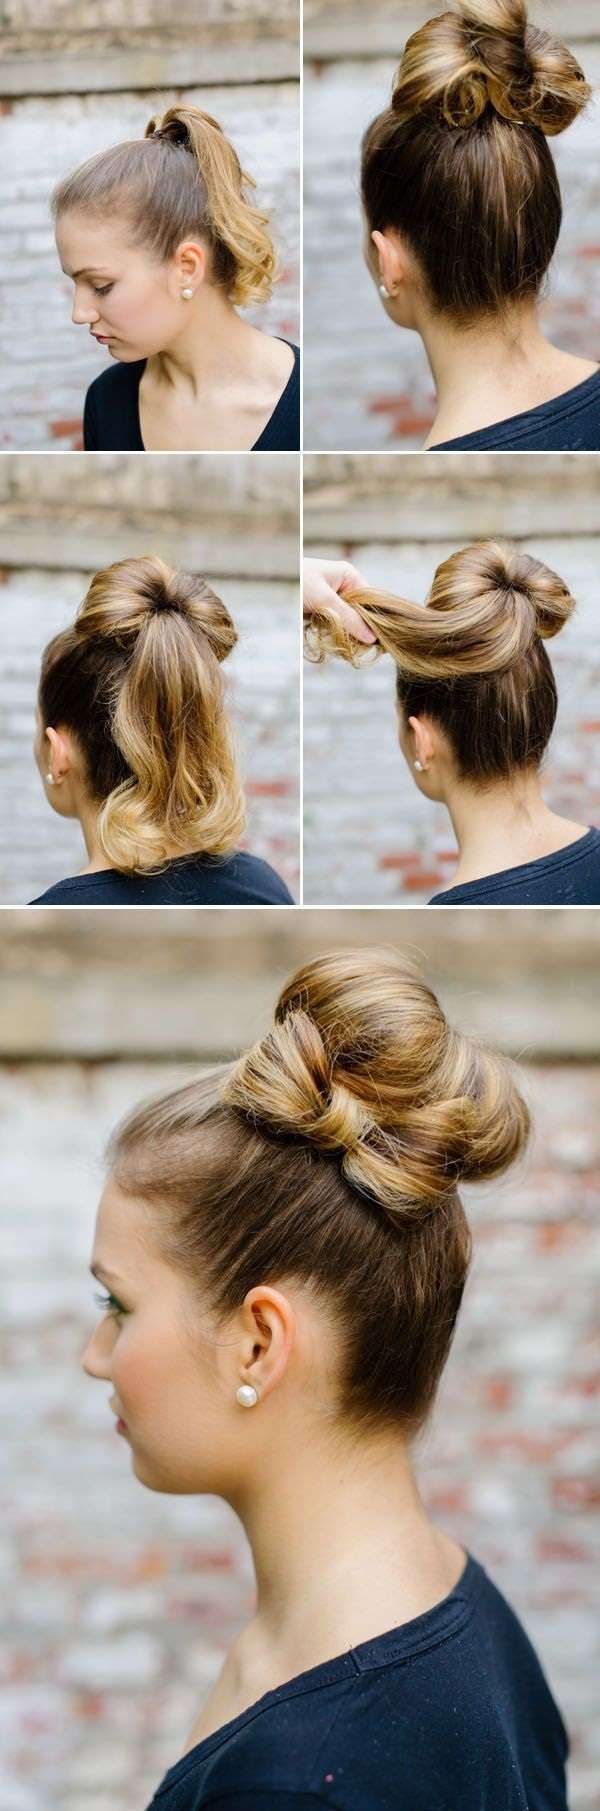 Easy Bun Hairstyles Fair Make Everyone Jealous With Easy Bun Hairstyles For Women  Easy Bun